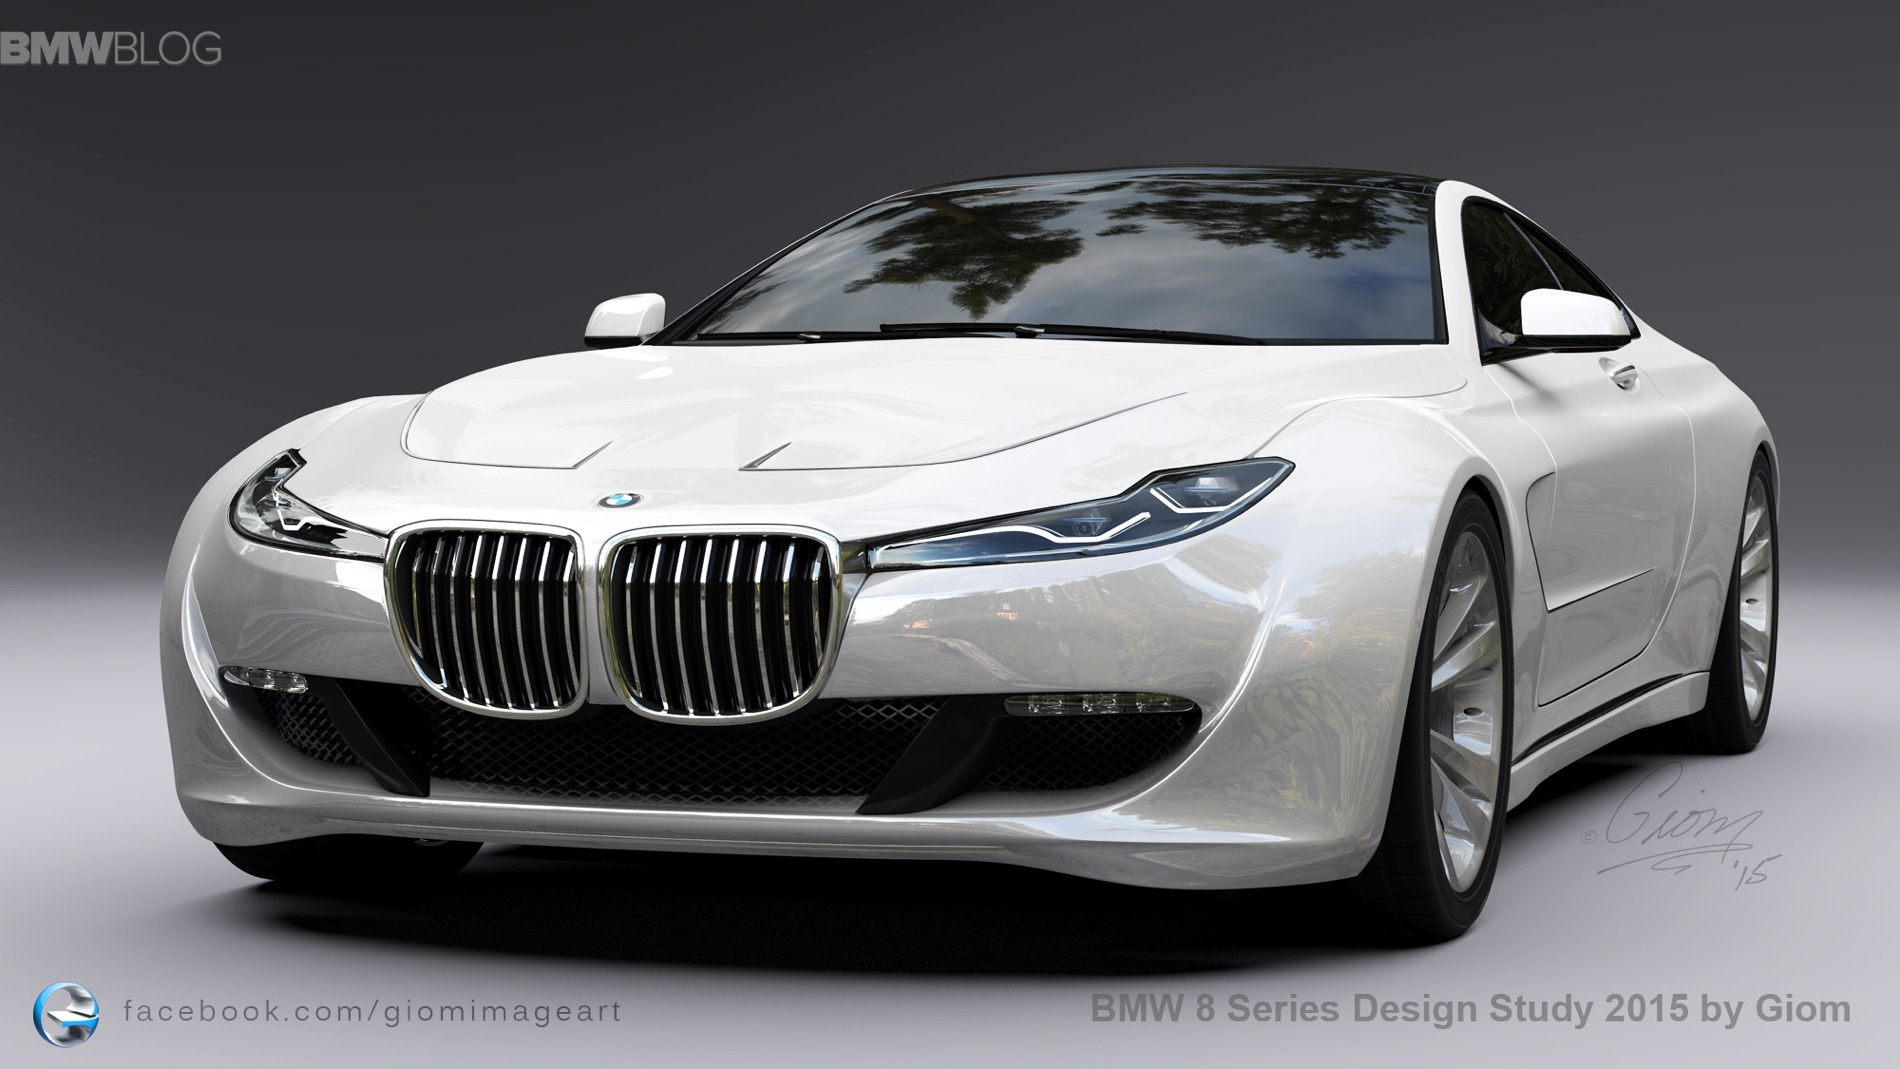 bmw-8-series-design-study-images-7